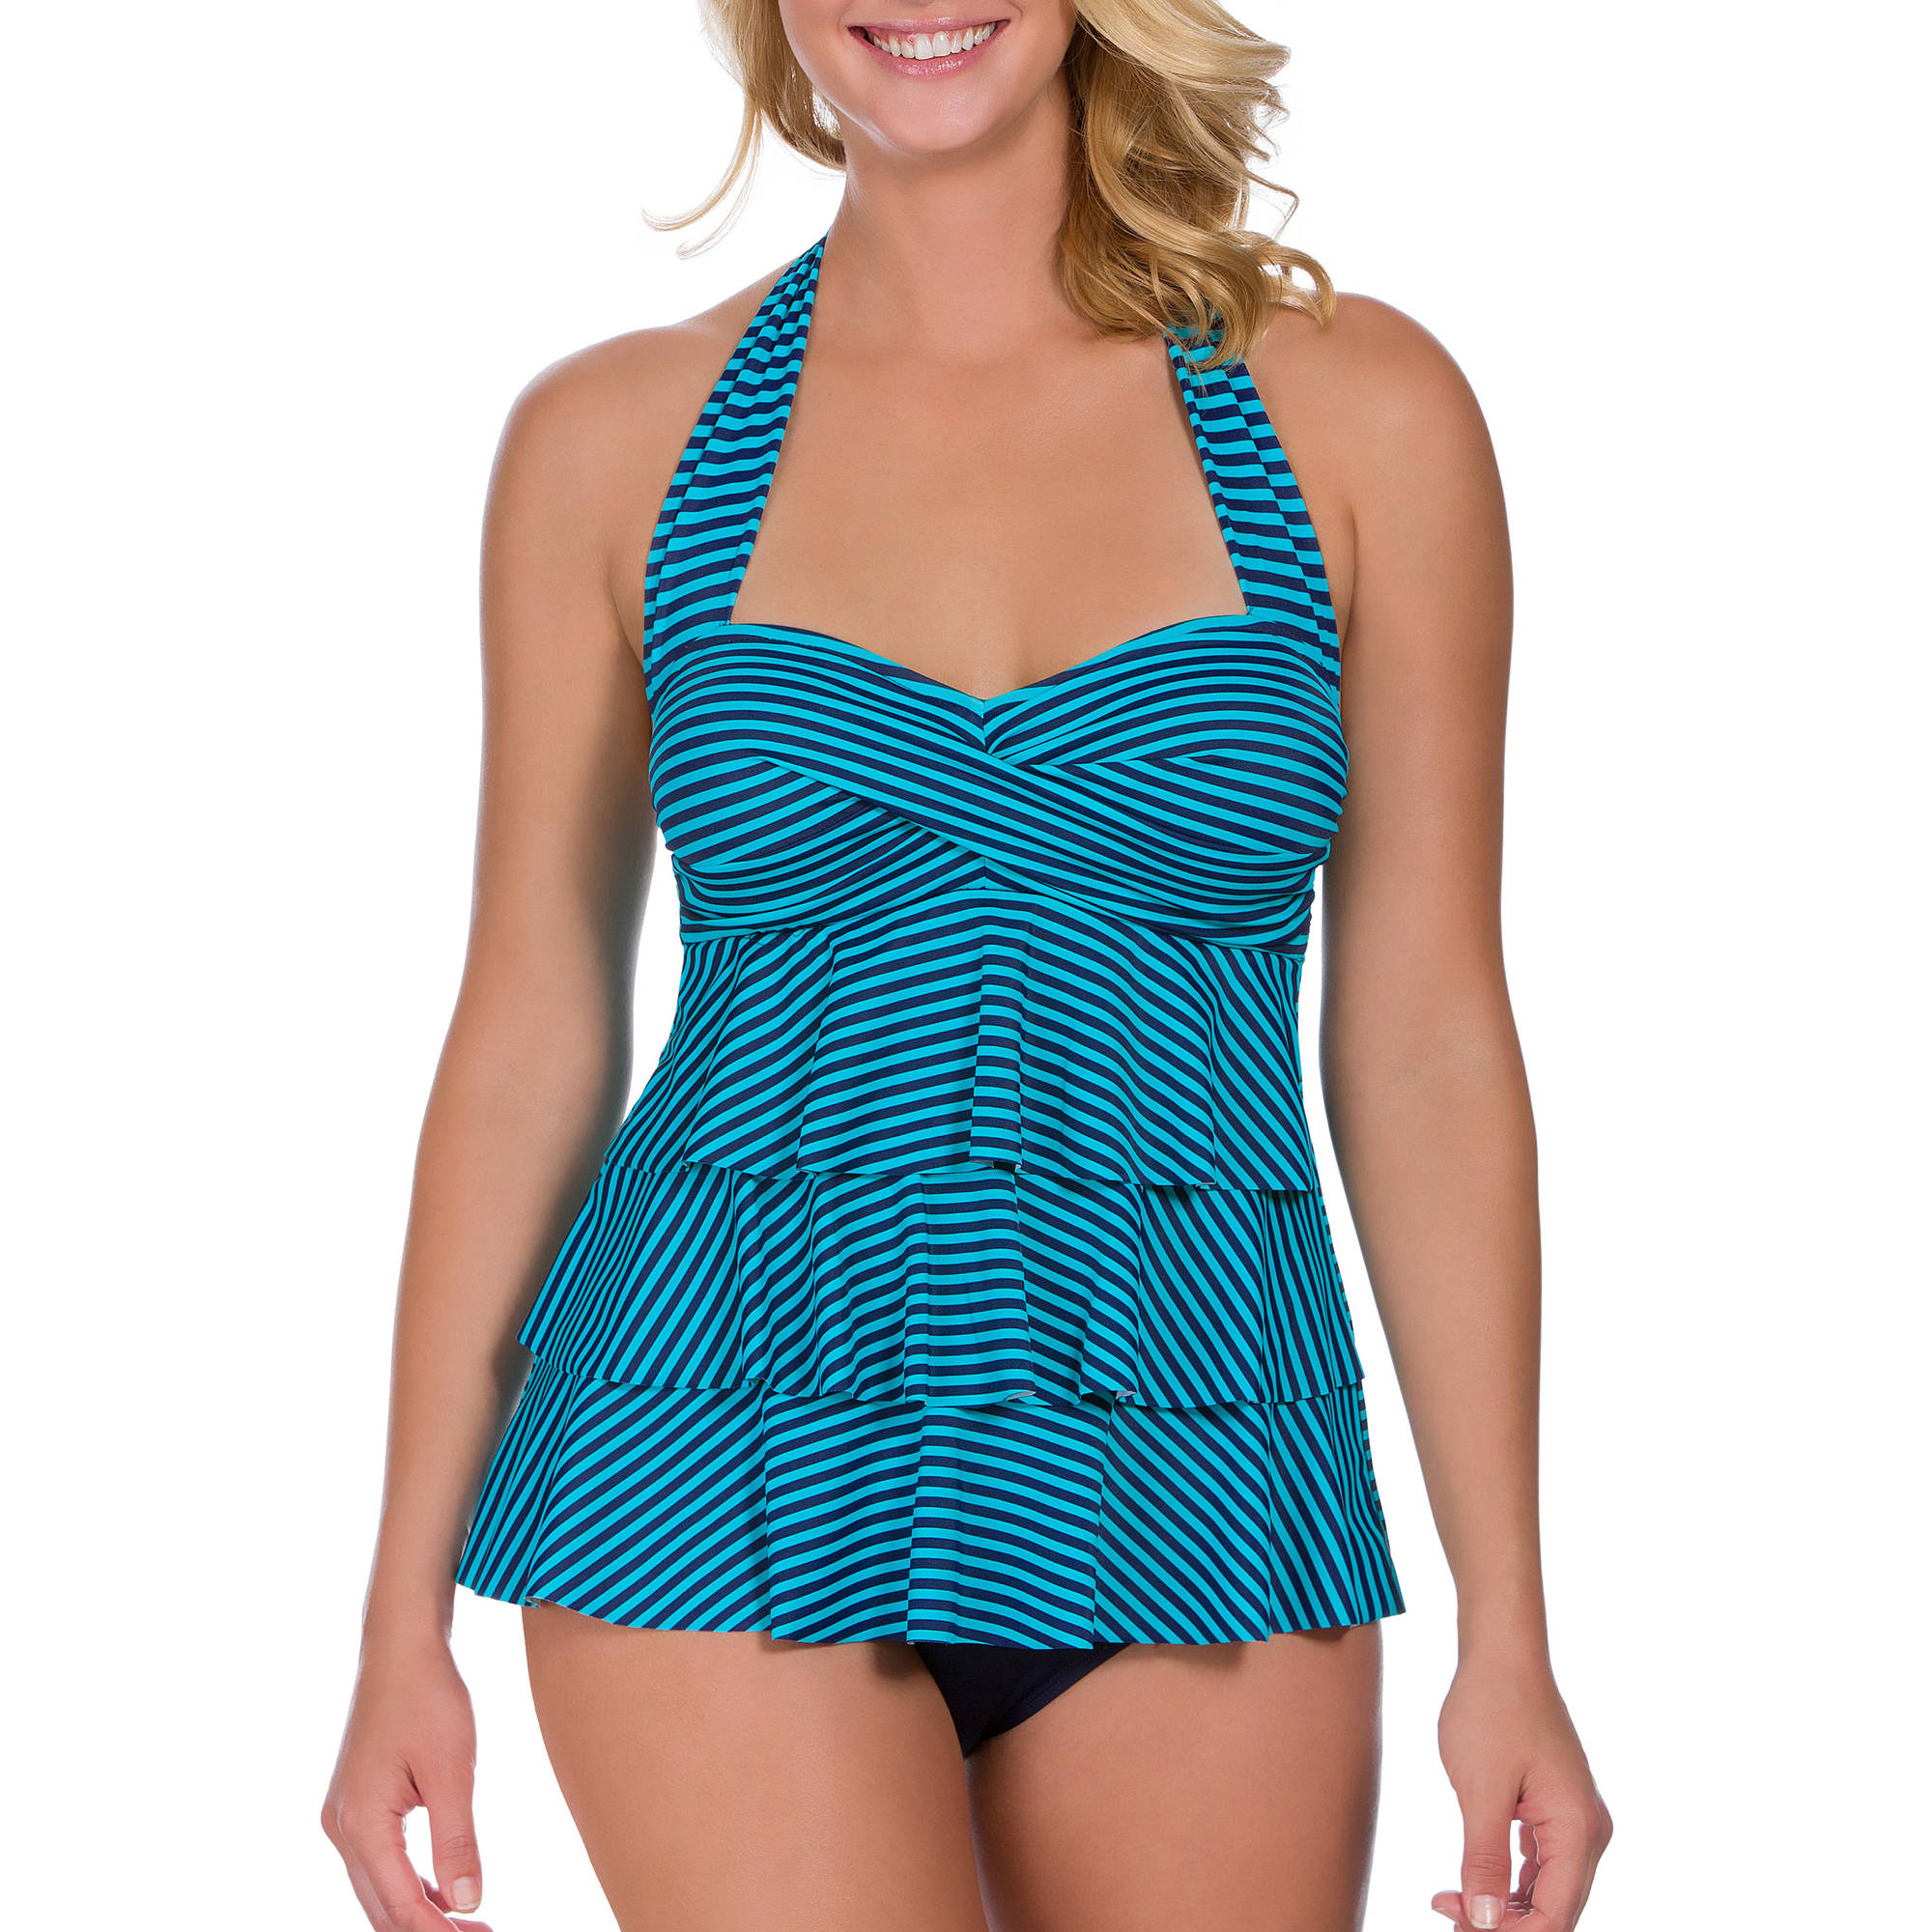 Suddenly Slim By Catalina Women's Retro Ruffled Slimming One-Piece Swimsuit